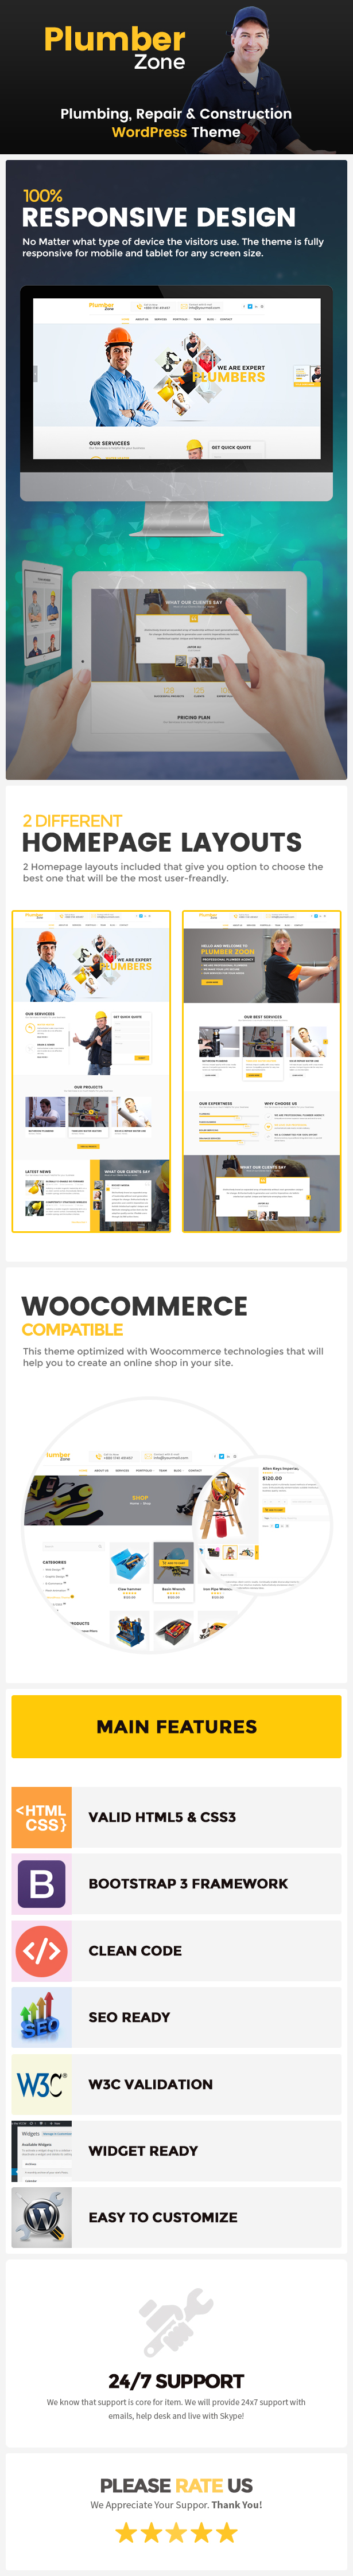 Plumber Zone wordpress theme